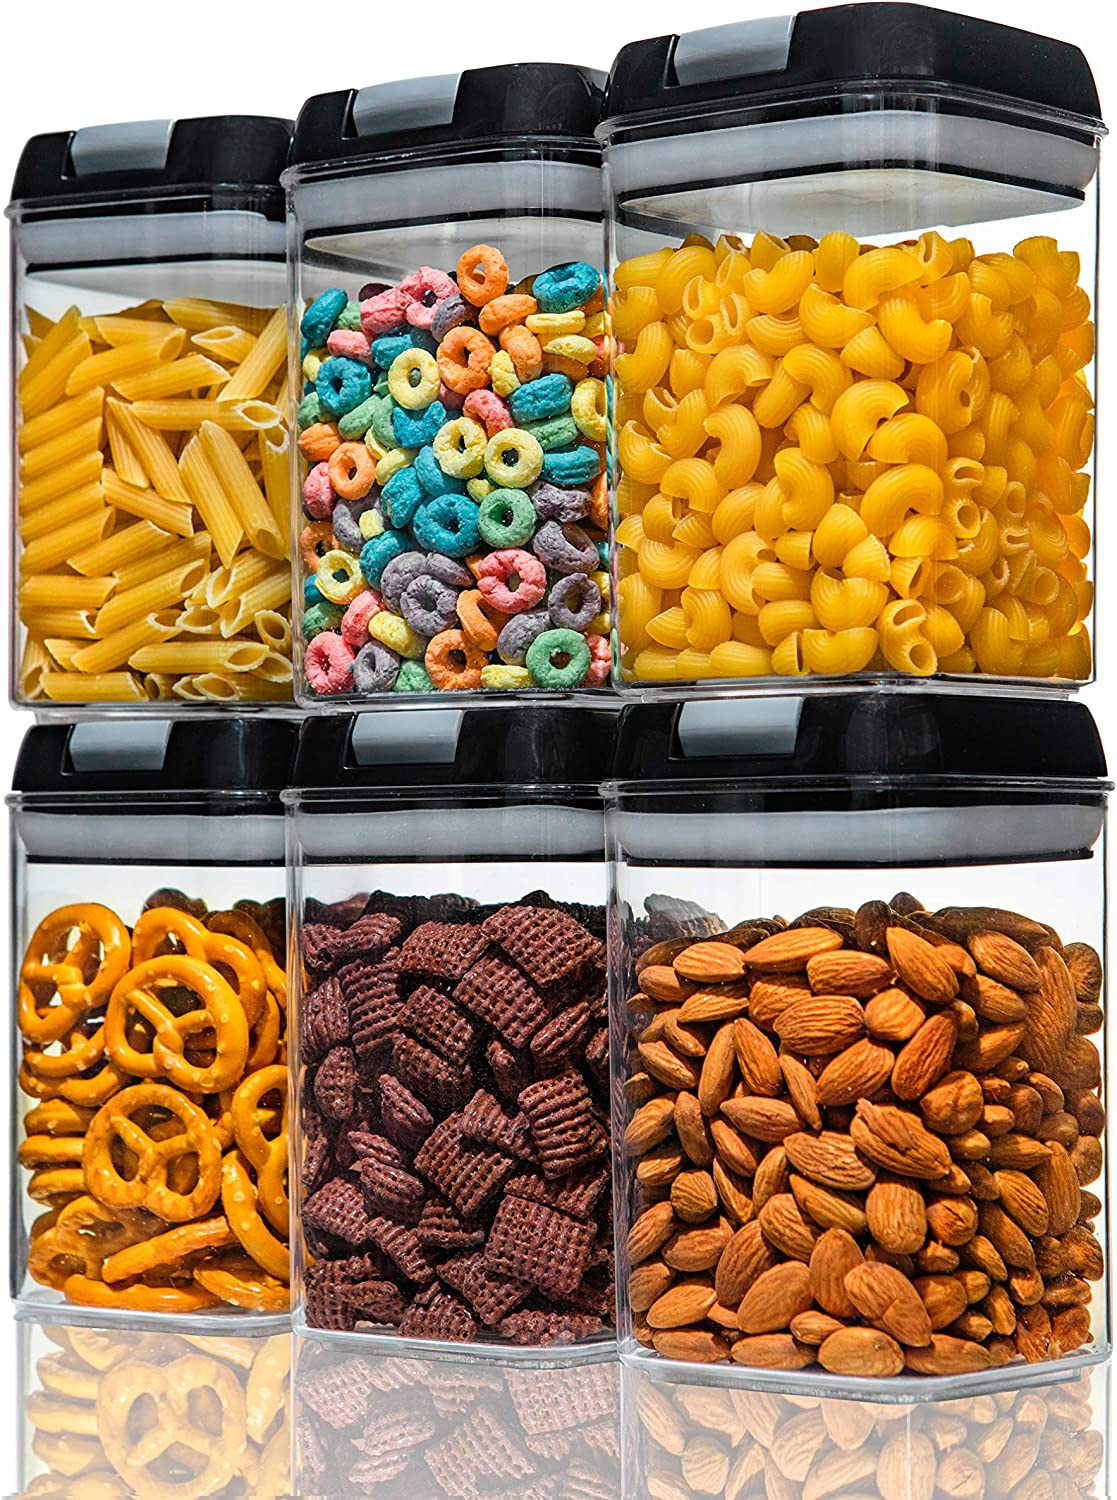 Numyton Airtight Food Storage Containers - 6Pcs - Pantry Organization and Storage - Dry Food Canisters - for pasta, snacks, biscuits, cereal, nuts